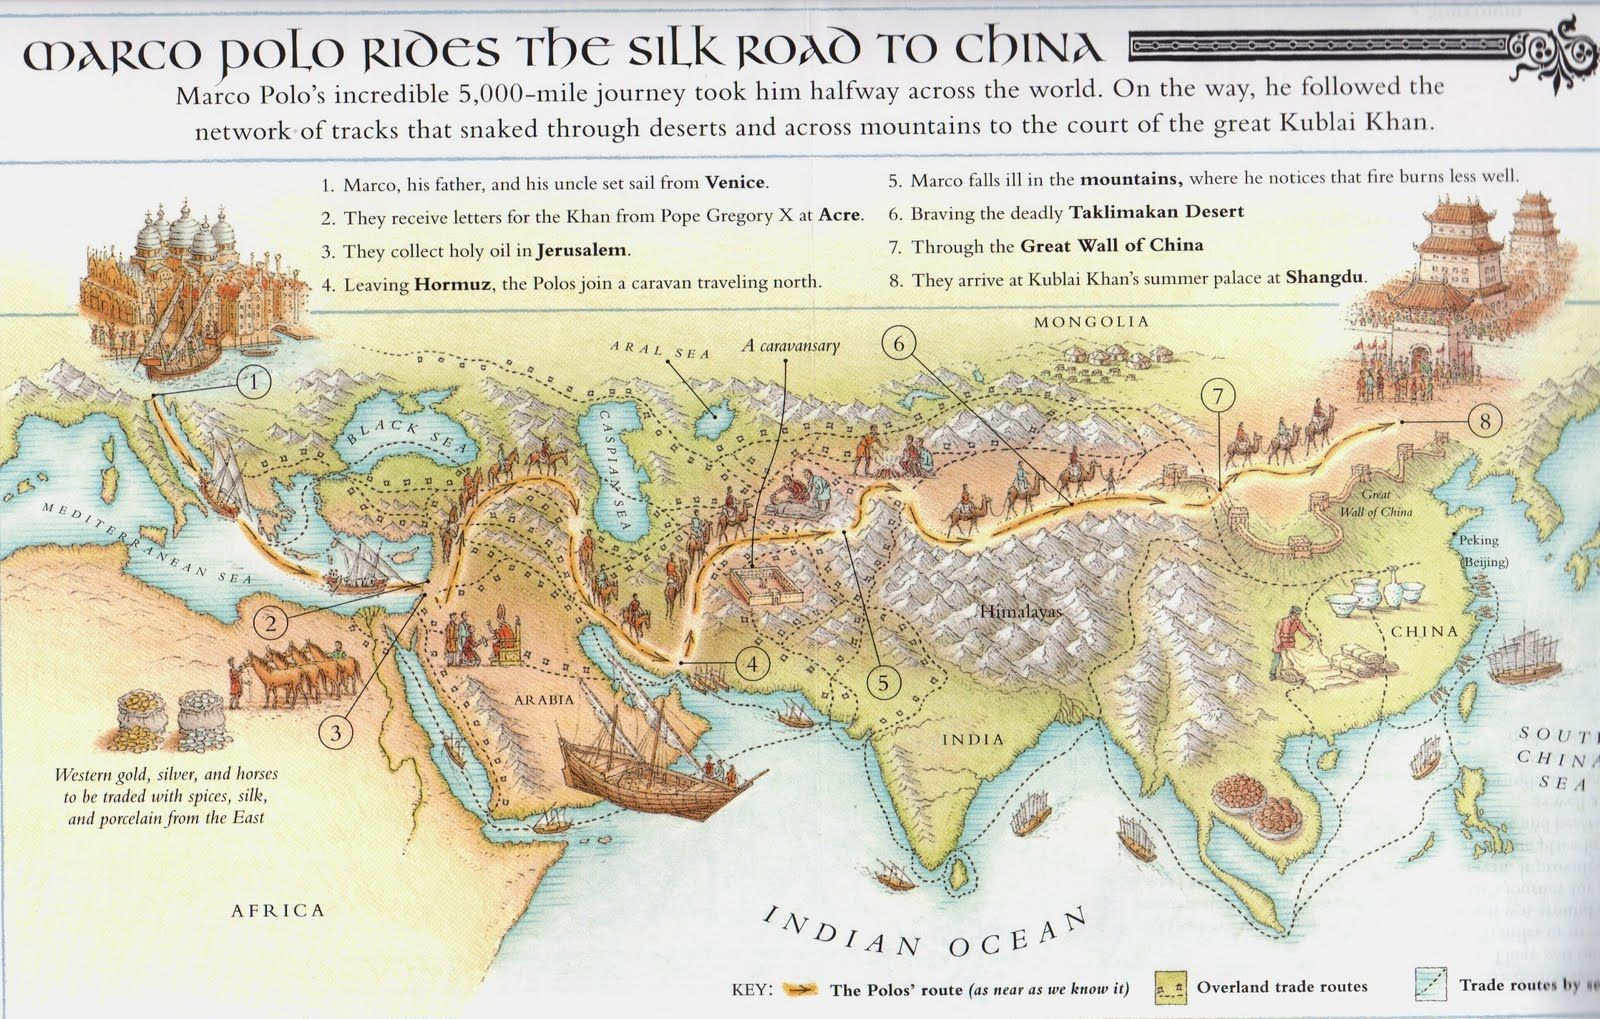 the role of technology in the changing patterns of interaction along the silk road Travellers along the silk roads were attracted not only by trade but also by the intellectual and cultural exchange that was taking place in cities along indeed, the silk roads became more popular and increasingly well-travelled over the course of the middle ages, and were still in use in the 19th century.